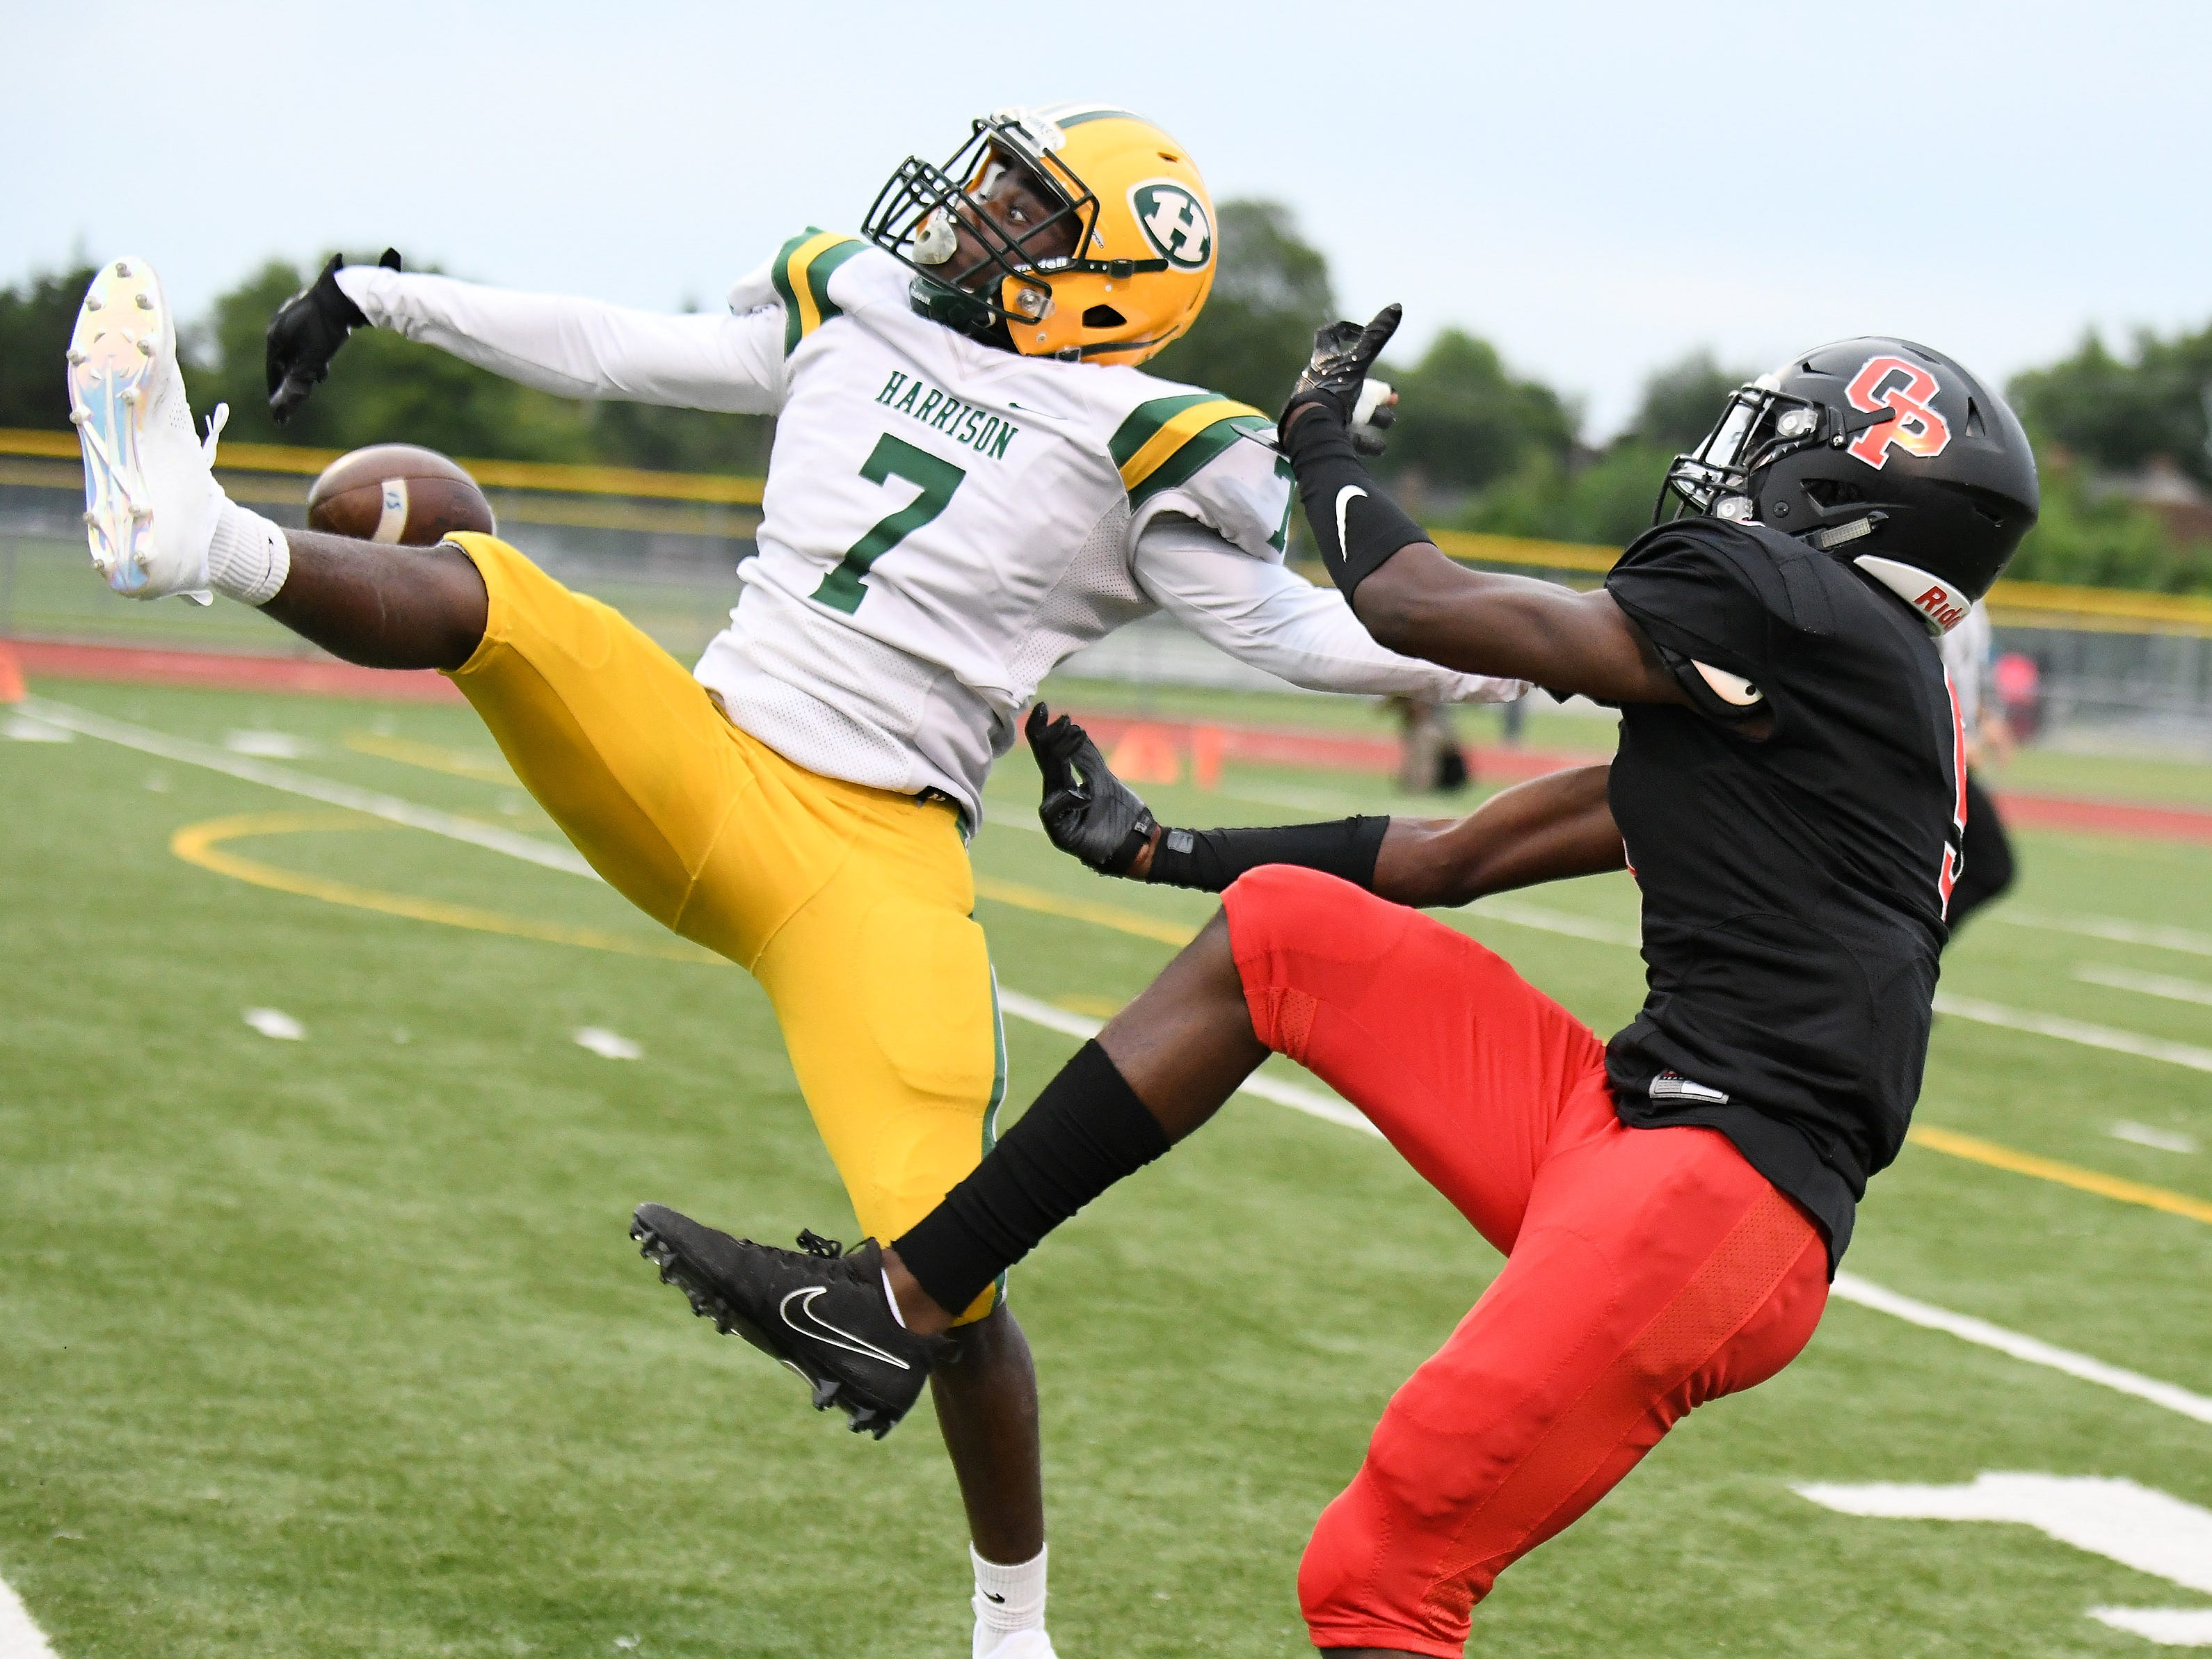 Looking a little bit more like ballet than football on this pass break up, Farmington Hills Harrison's Delwuan Gaston (7) breaks up a pass intended for Oak Park's Terrell Goff durinng a game at Oak Park High School on Sept. 7, 2018.  Both teams made the state playoffs. For Harrison it was the final season of one of the most dominant high school football programs in state history. The school will close at the end of this school year due to declining enrollment and consolidation.